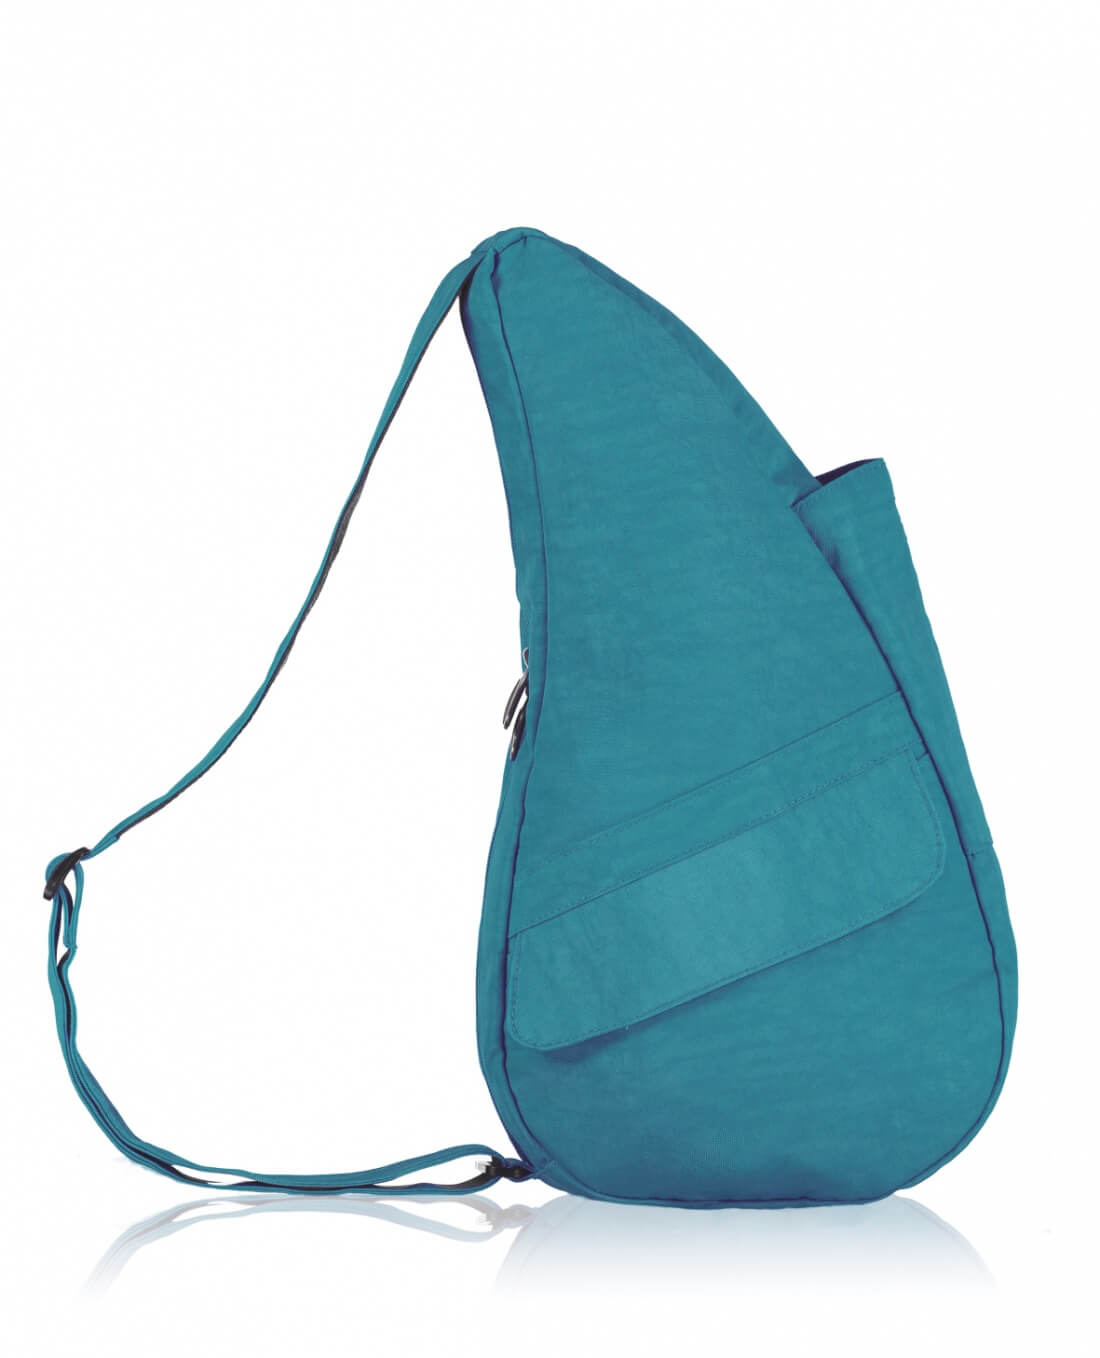 Healthy Back Bag Classic Textured S Teal-21378